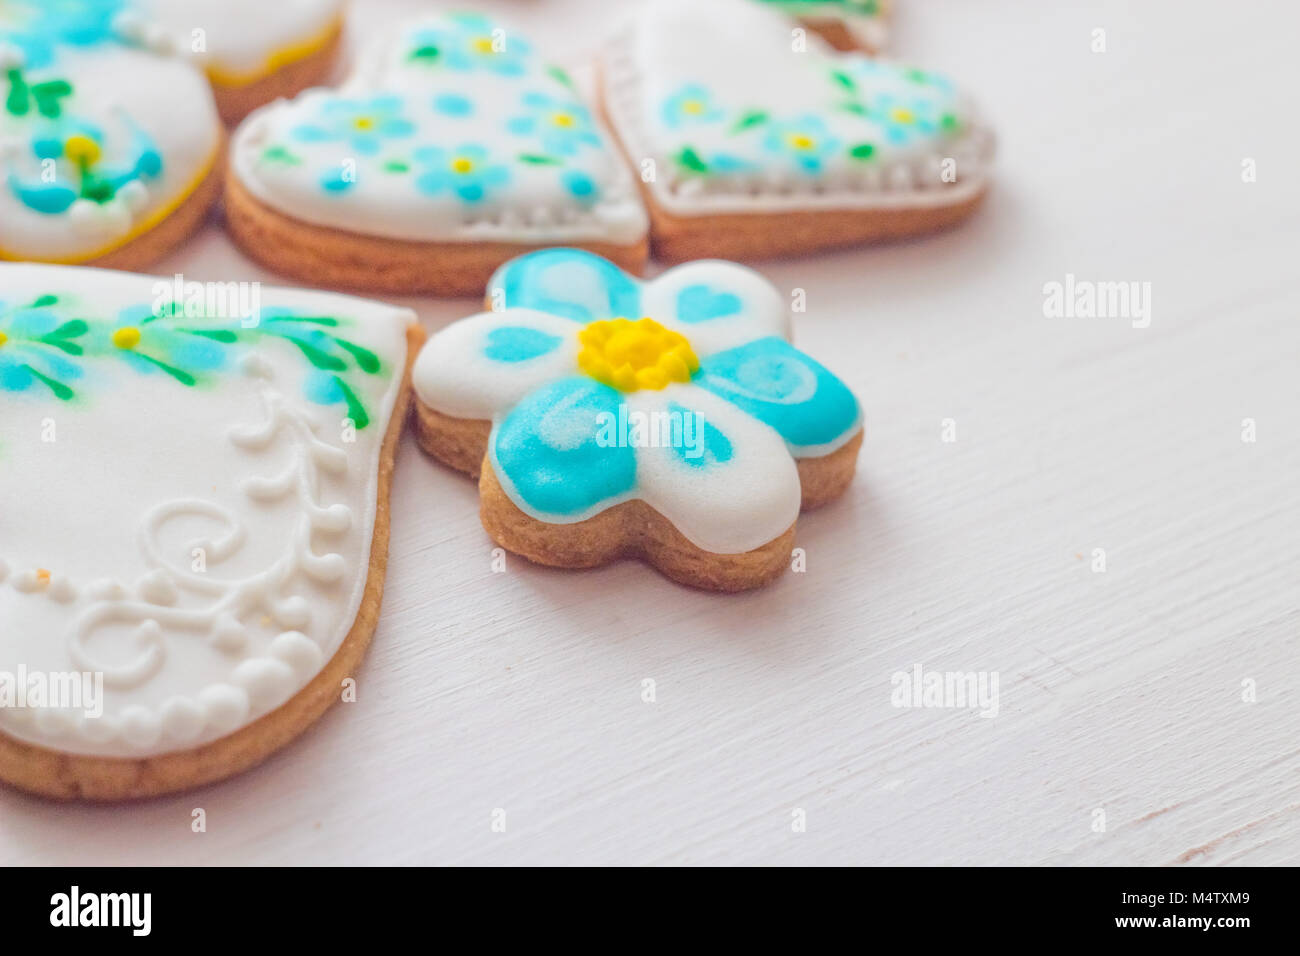 Homemade cookies made in the form of heart with multi-colored glaze. - Stock Image